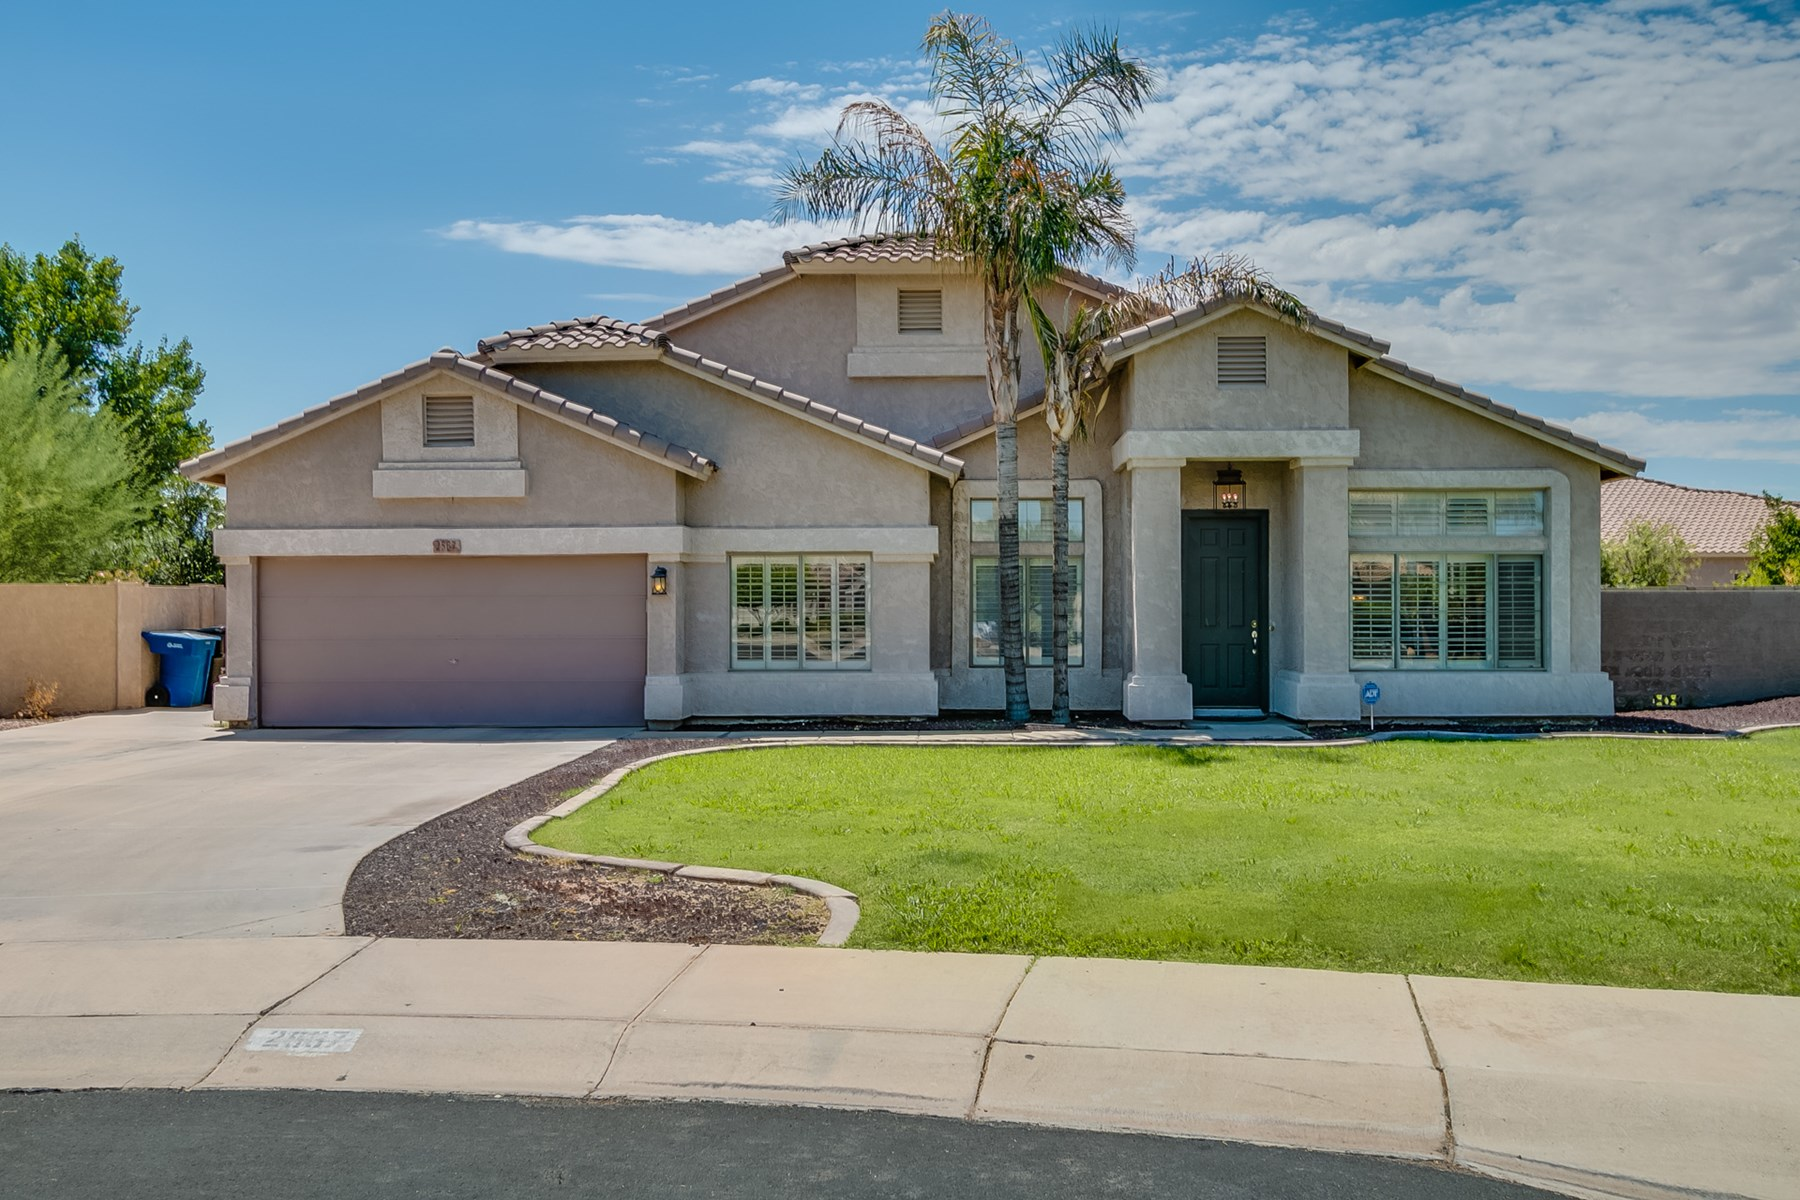 5 BEDROOM 3 BATH HOME IN GILBERT